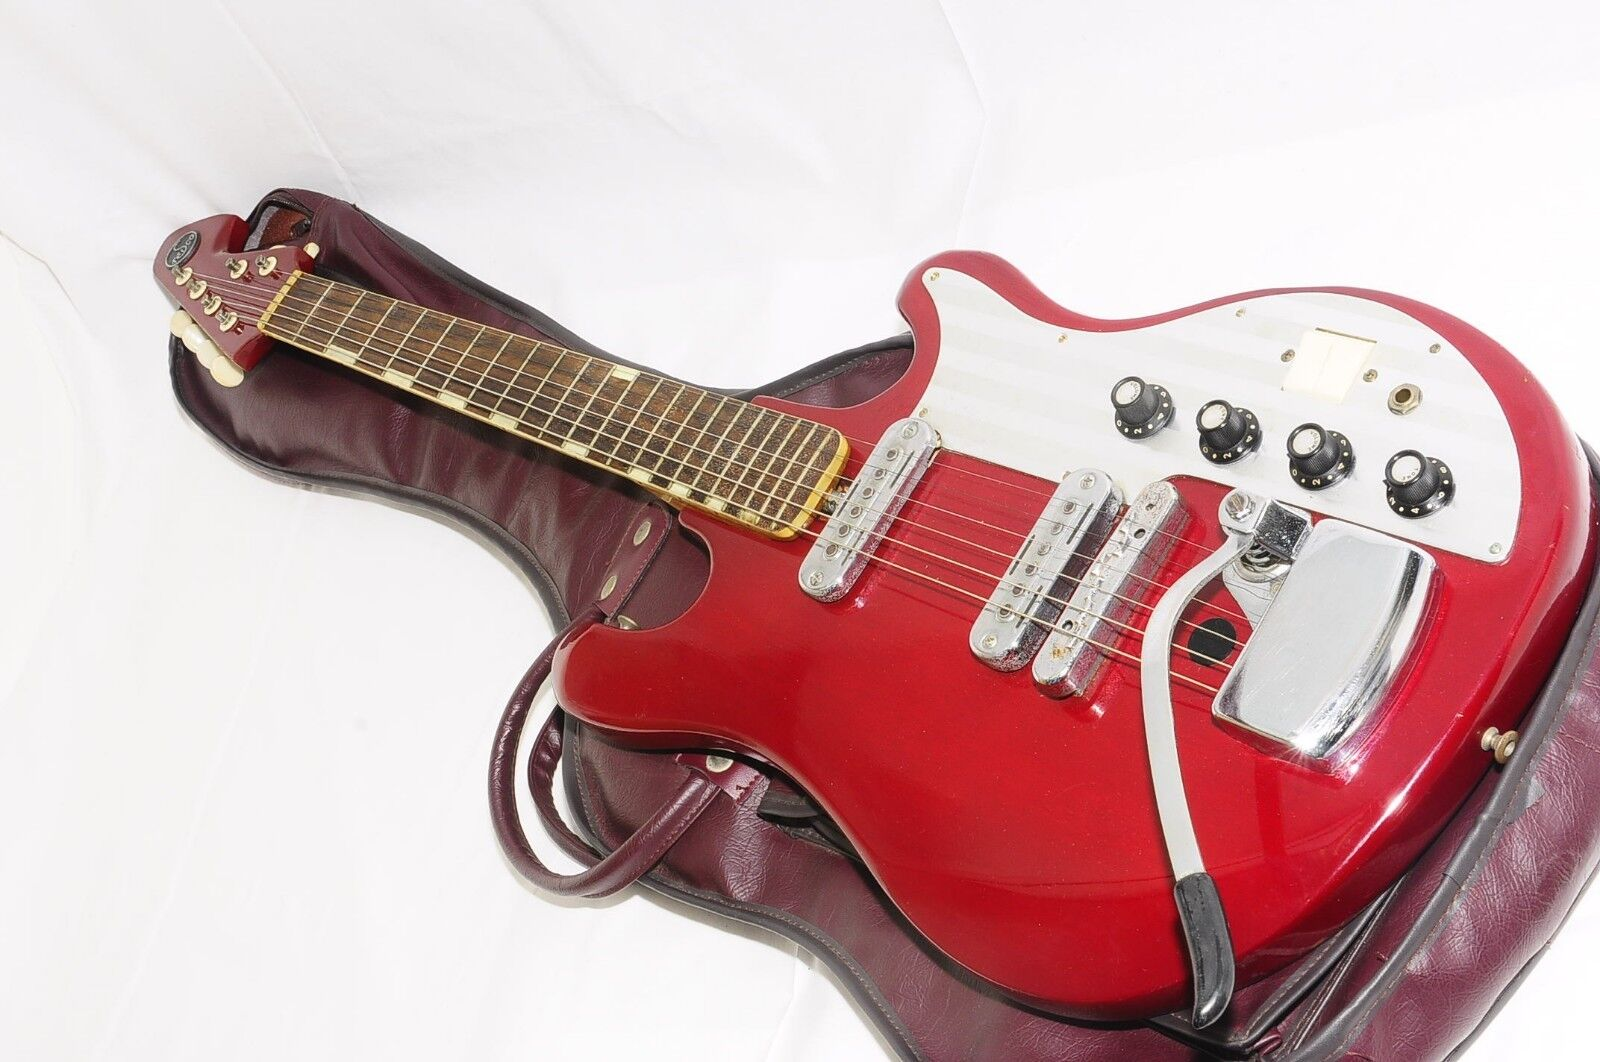 TEISCO WG-2L Original Vintage Bizarre Electric Guitar RefNo 1885